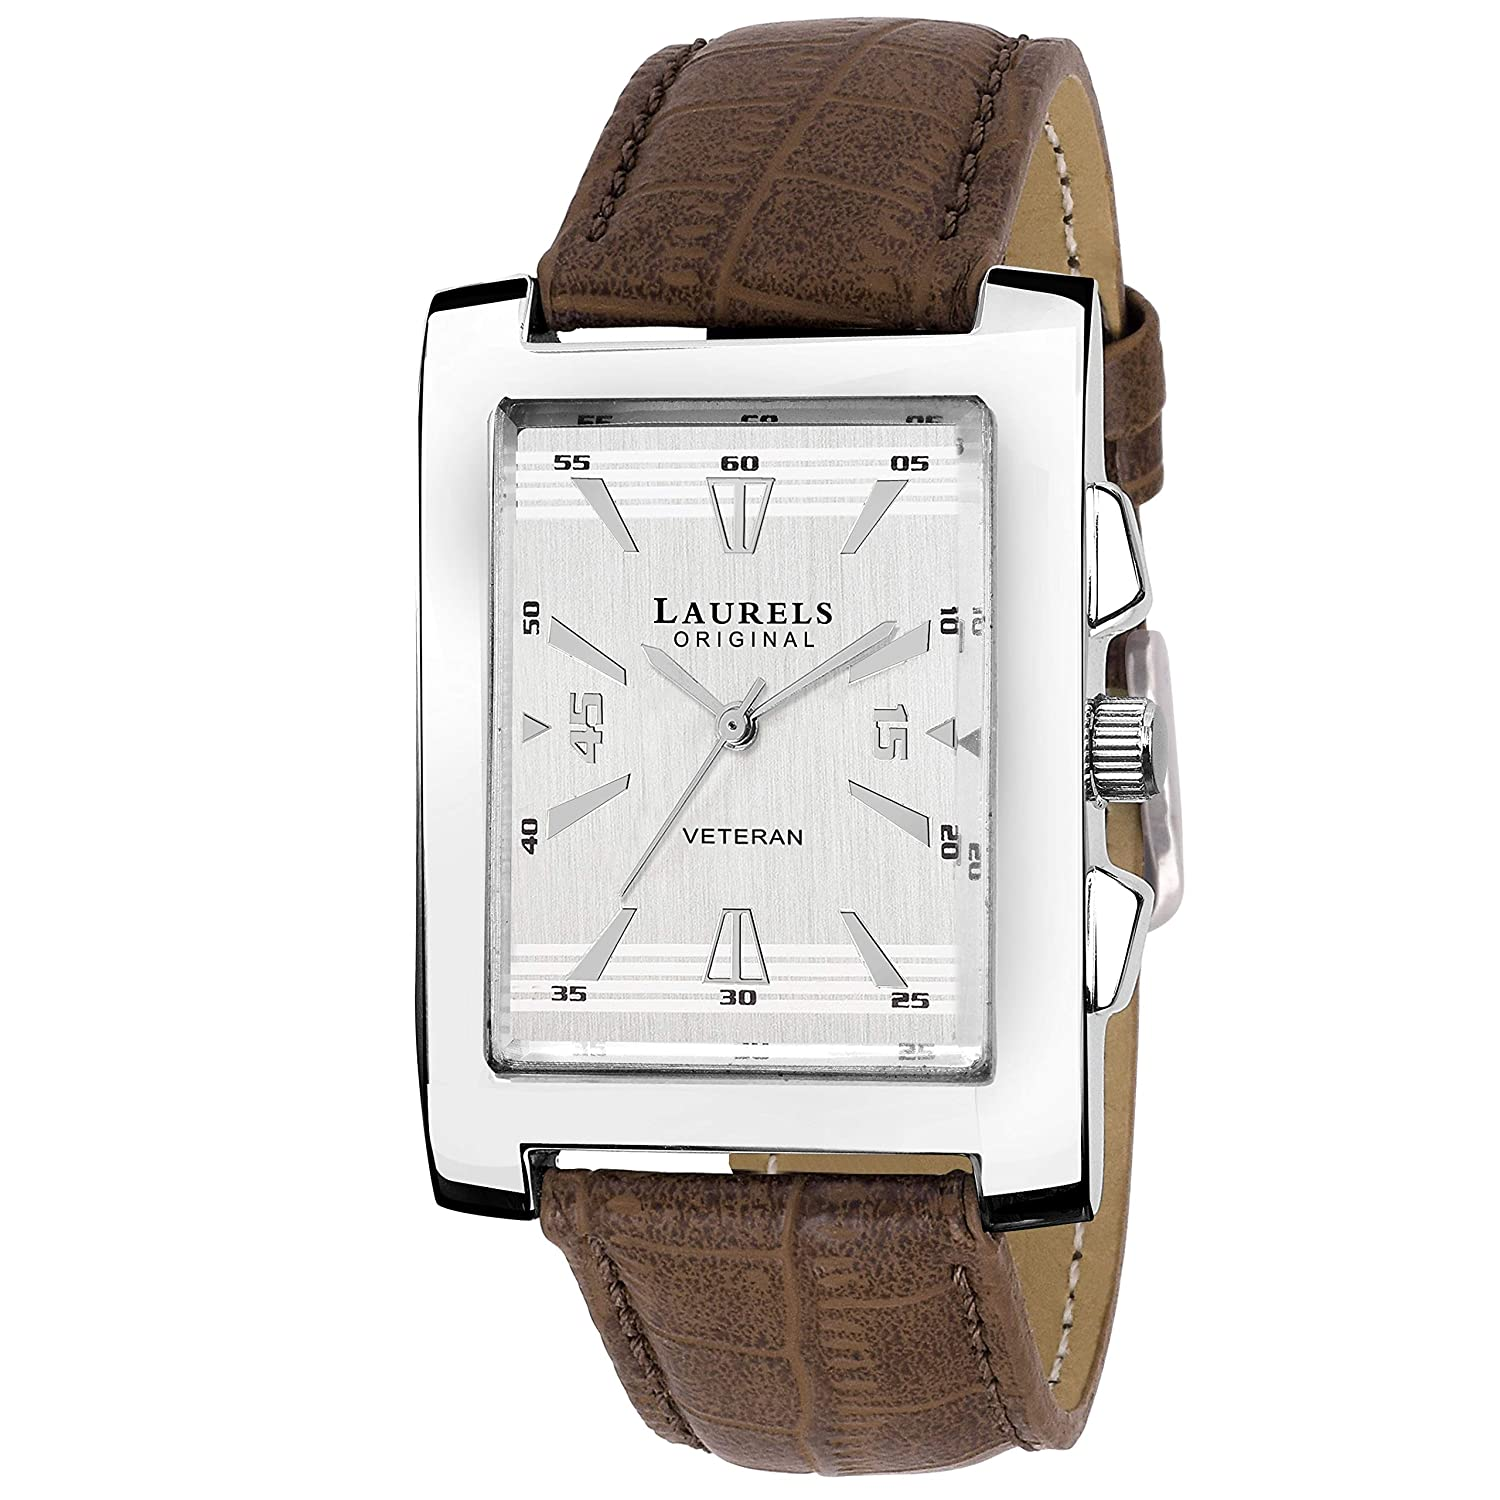 8d170015e05c Buy Laurels Imperial 2 Analog Silver Dial Men s Watch - Lo-Imp-201 Online at  Low Prices in India - Amazon.in